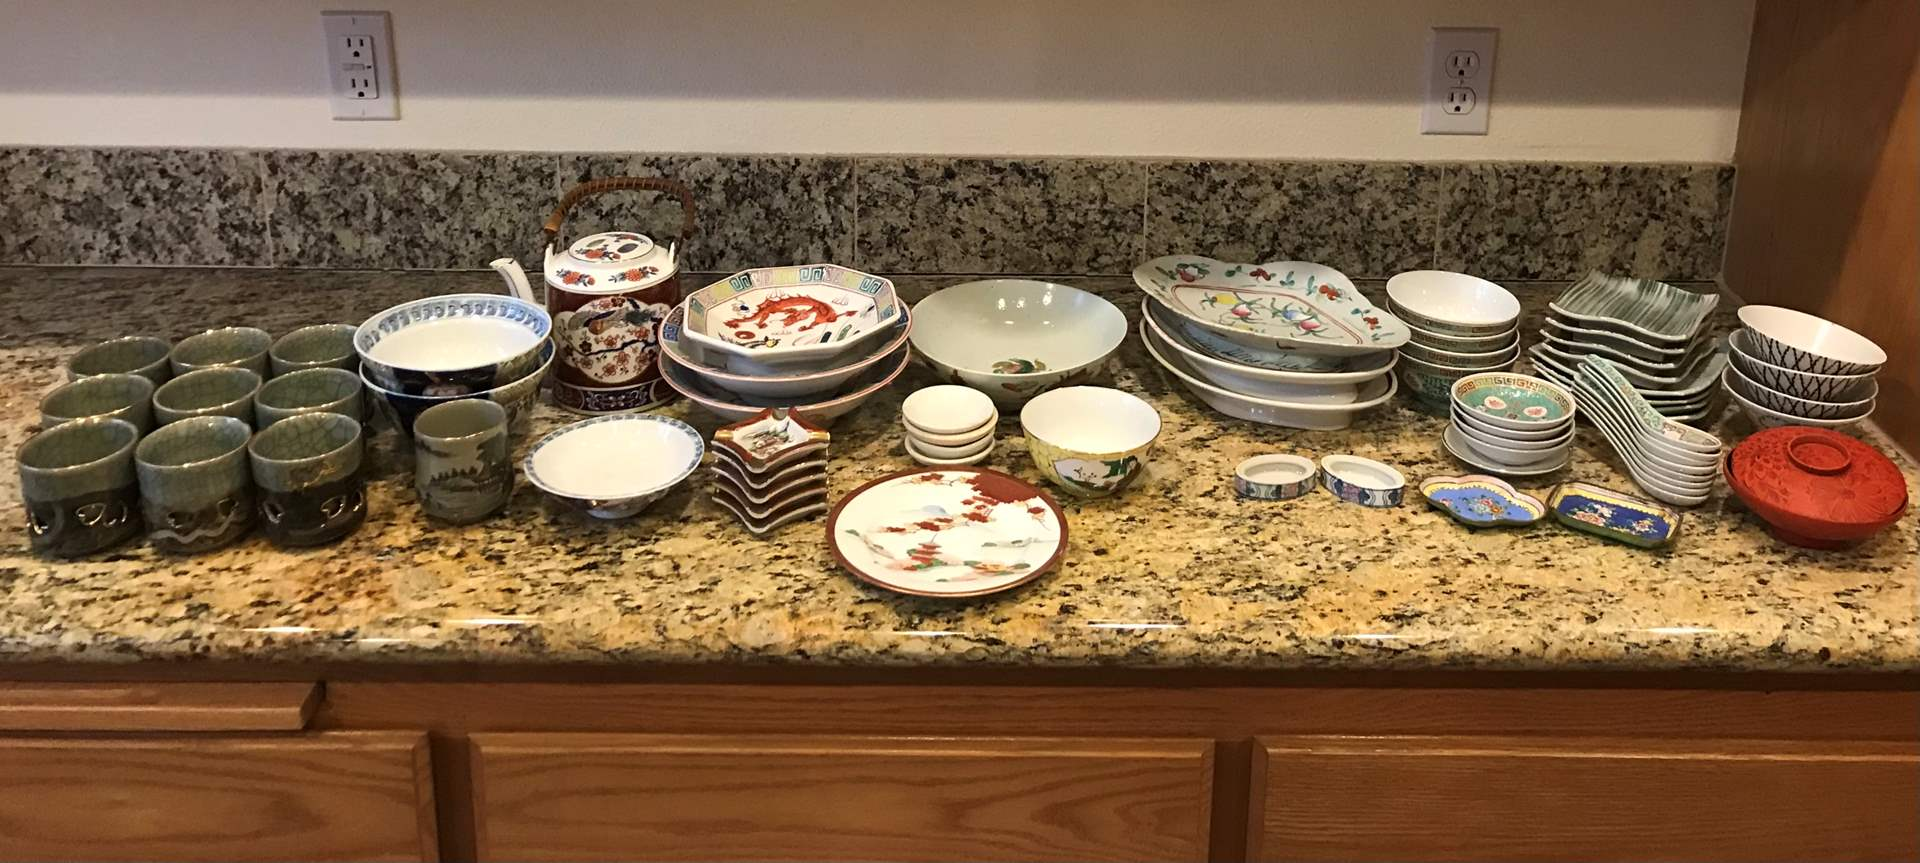 Lot # 57 - Selection of Asian Bowls, Plates, Spoons, Cups & More.. (main image)